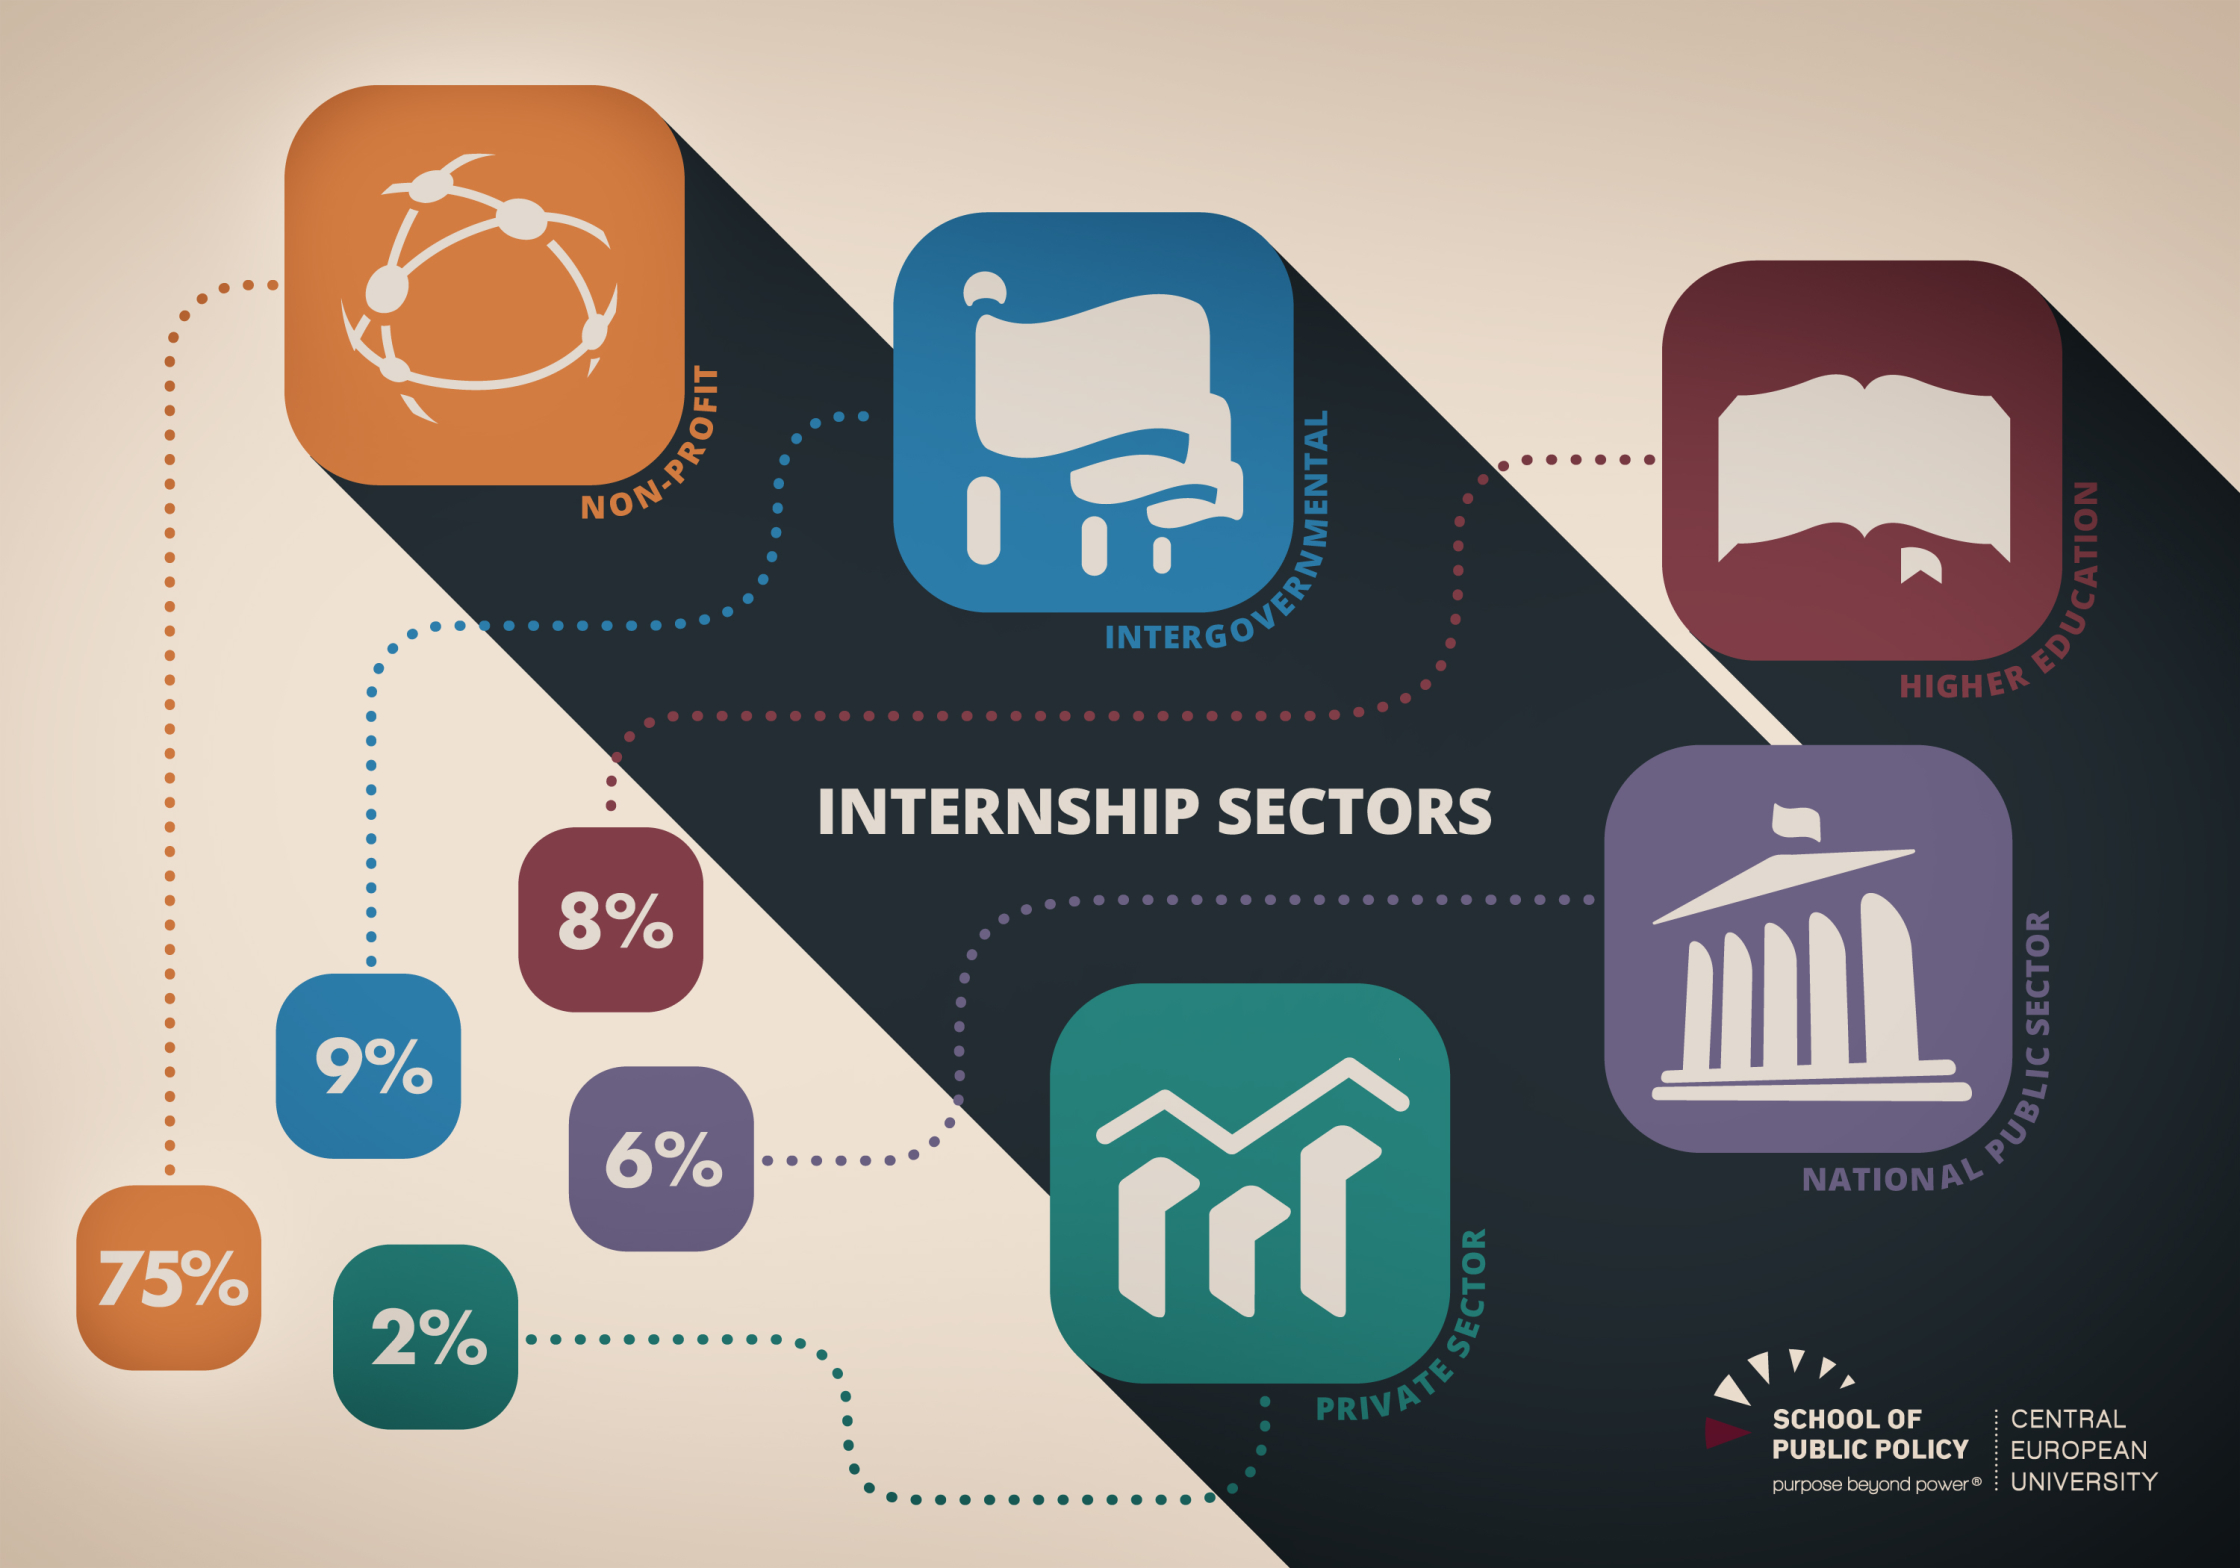 CEU Intership Sectors